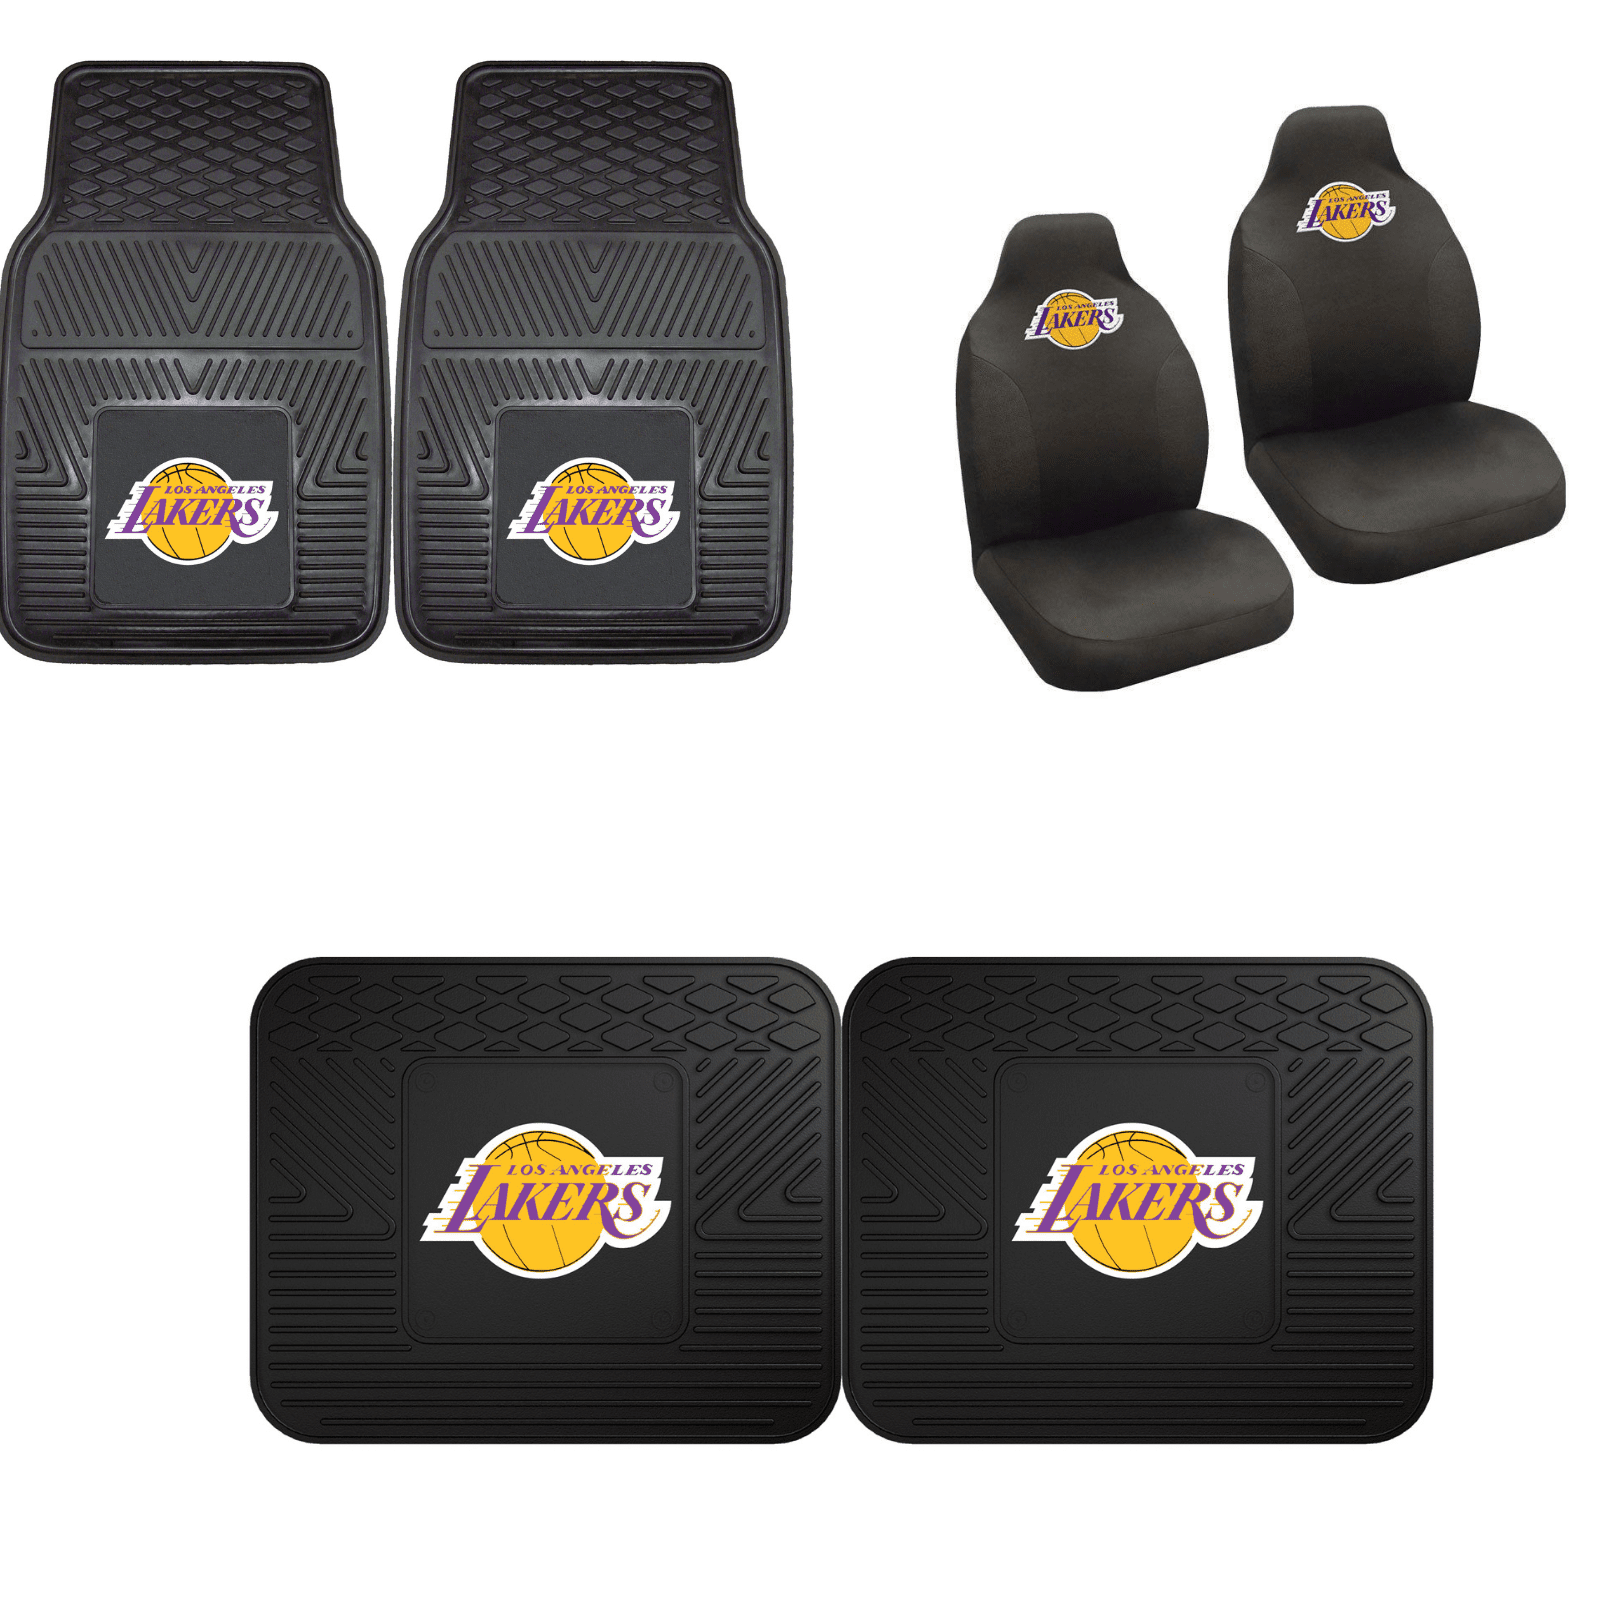 Los Angeles (UCLA) Car Accessories, Car Mats & Seat Covers